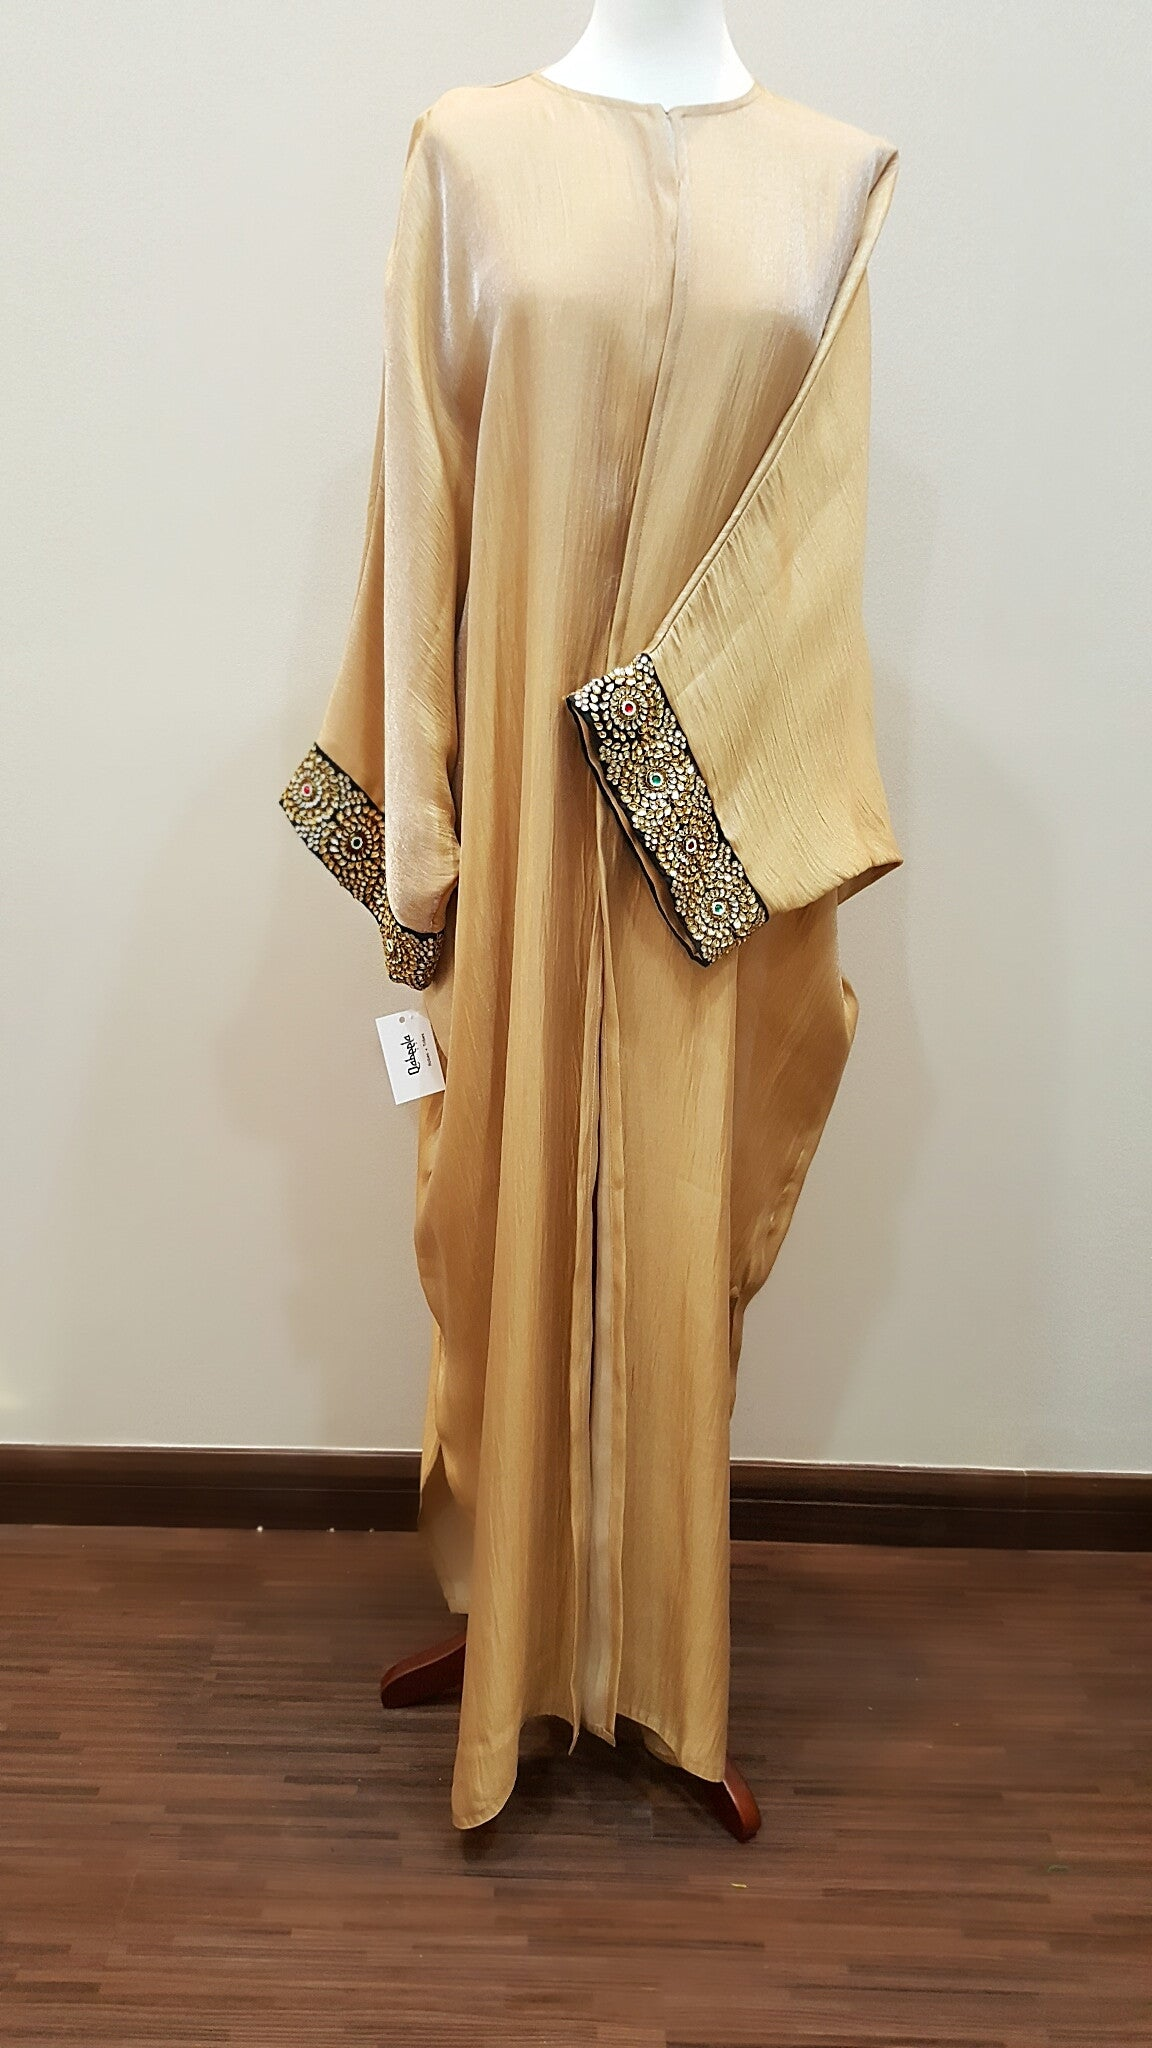 Silk Abaya with exquisite Indian Embroidery in Crystals